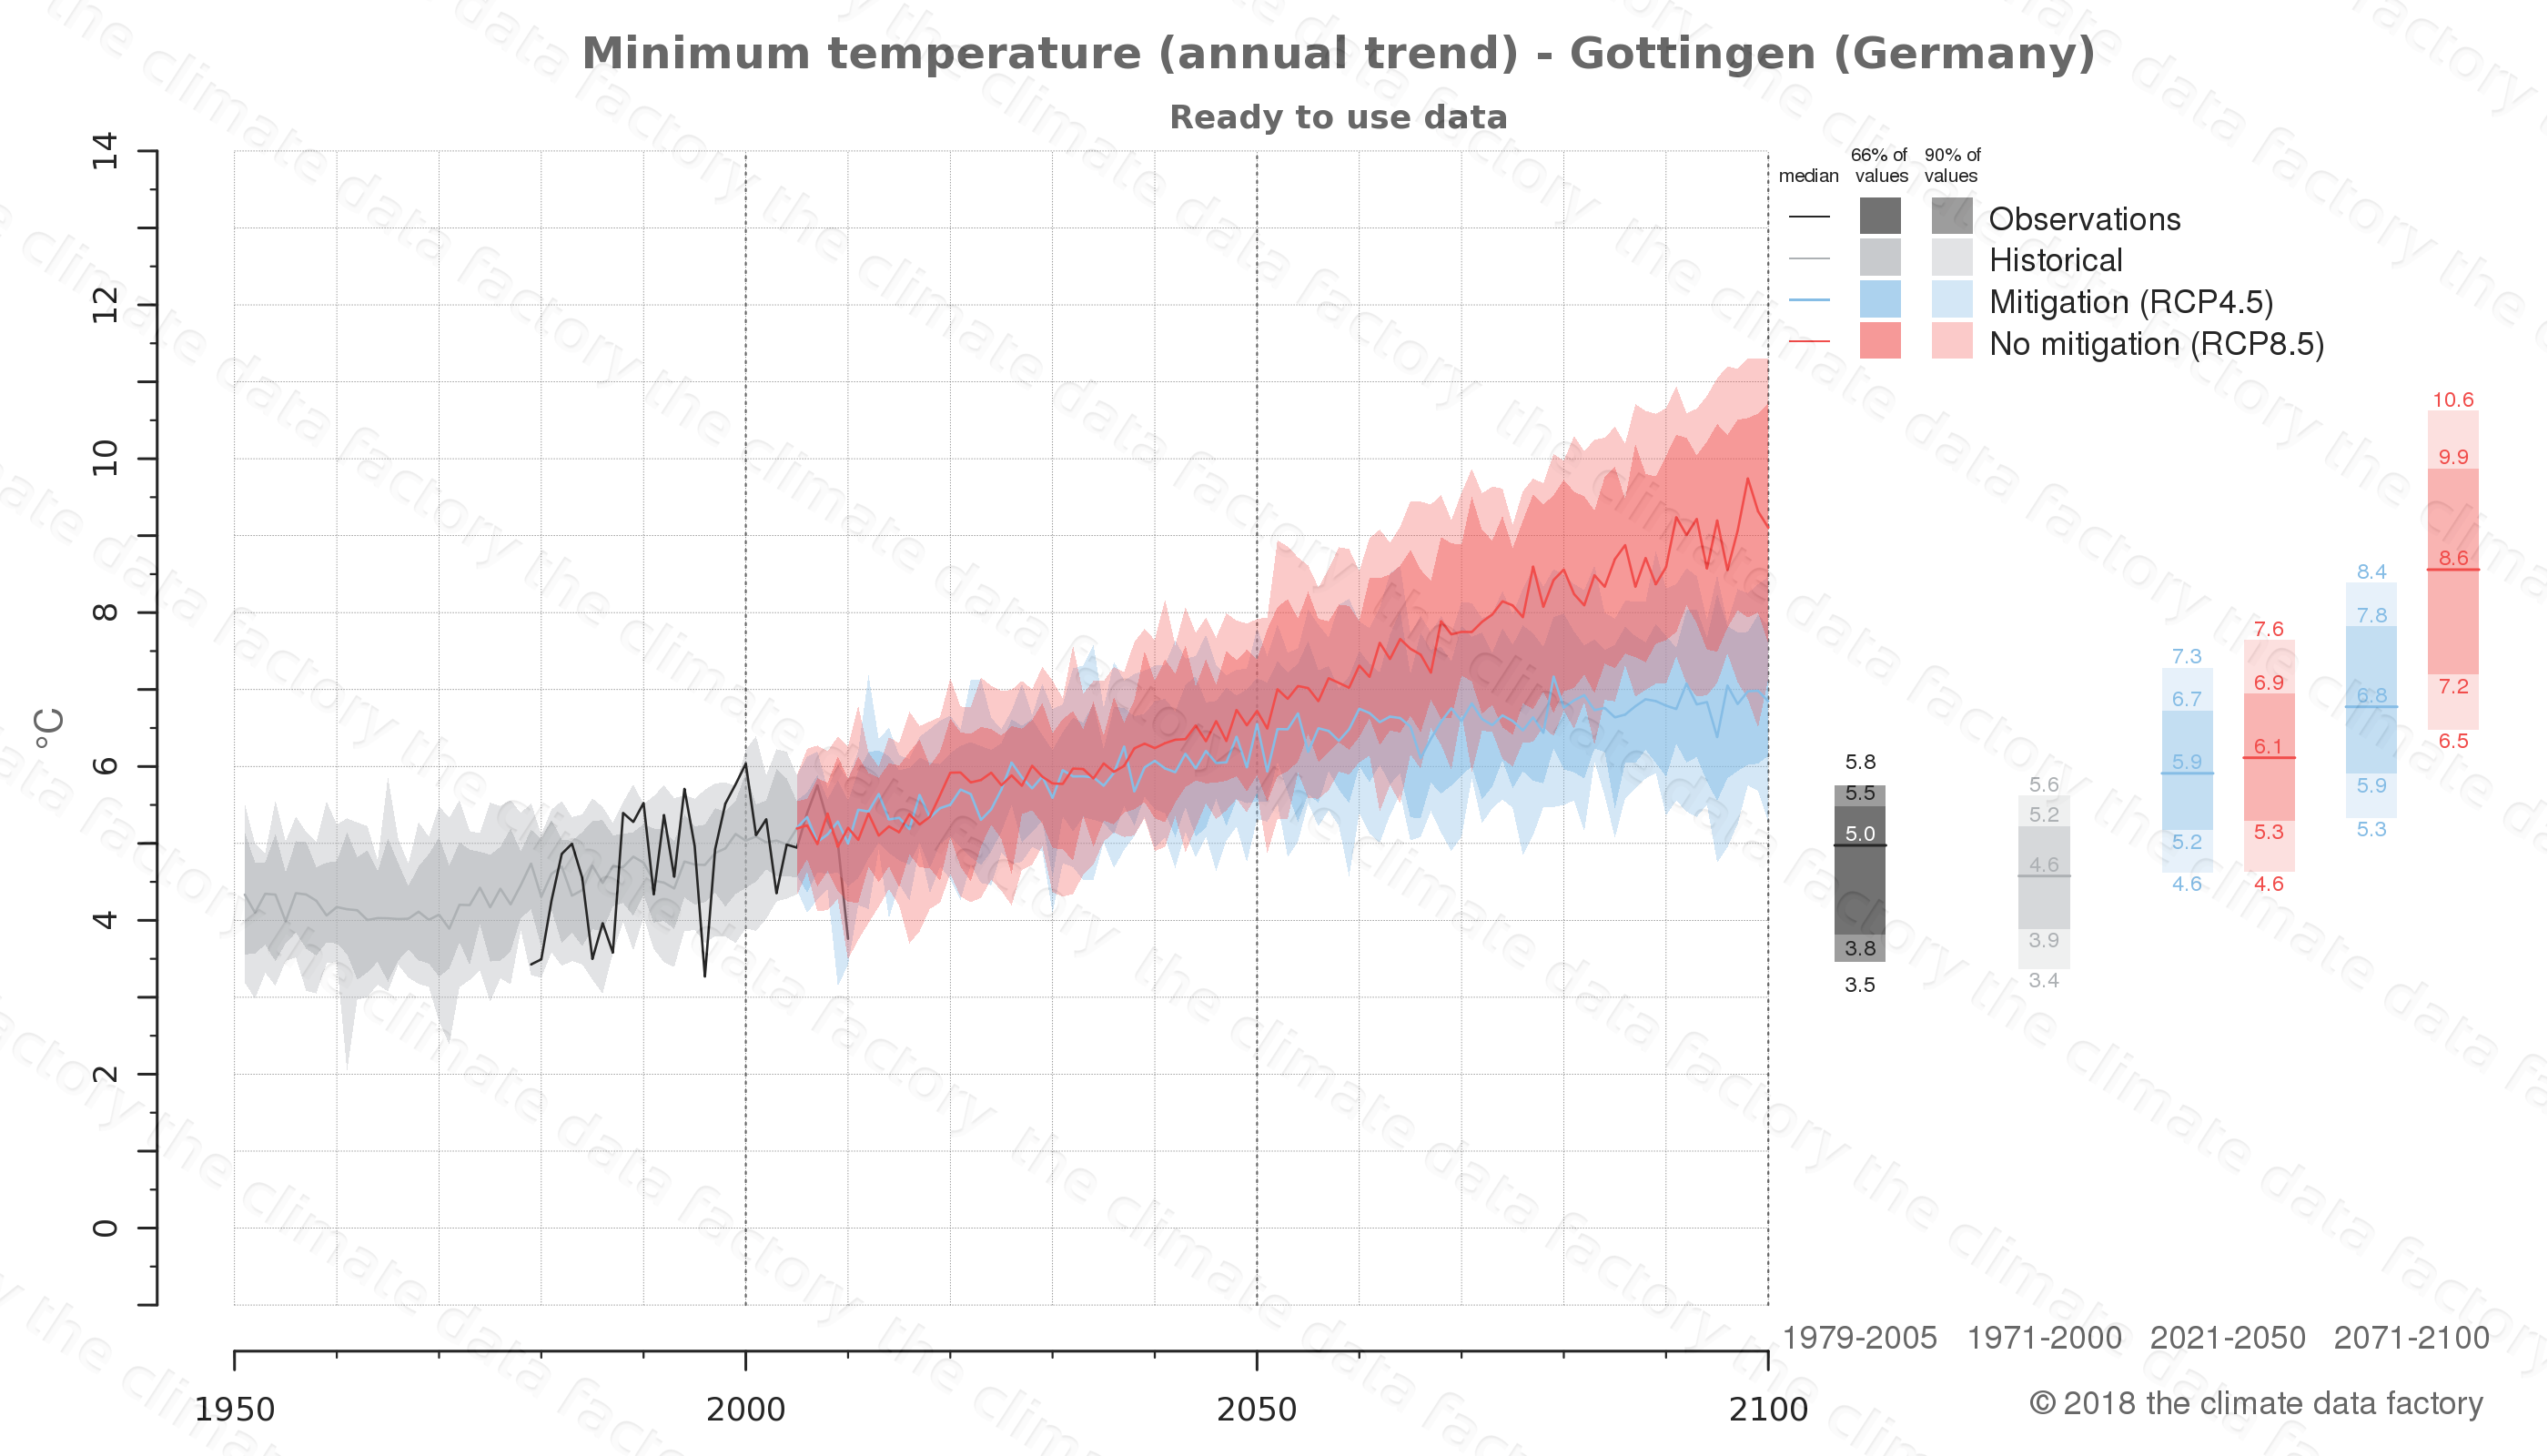 climate change data policy adaptation climate graph city data minimum-temperature gottingen germany